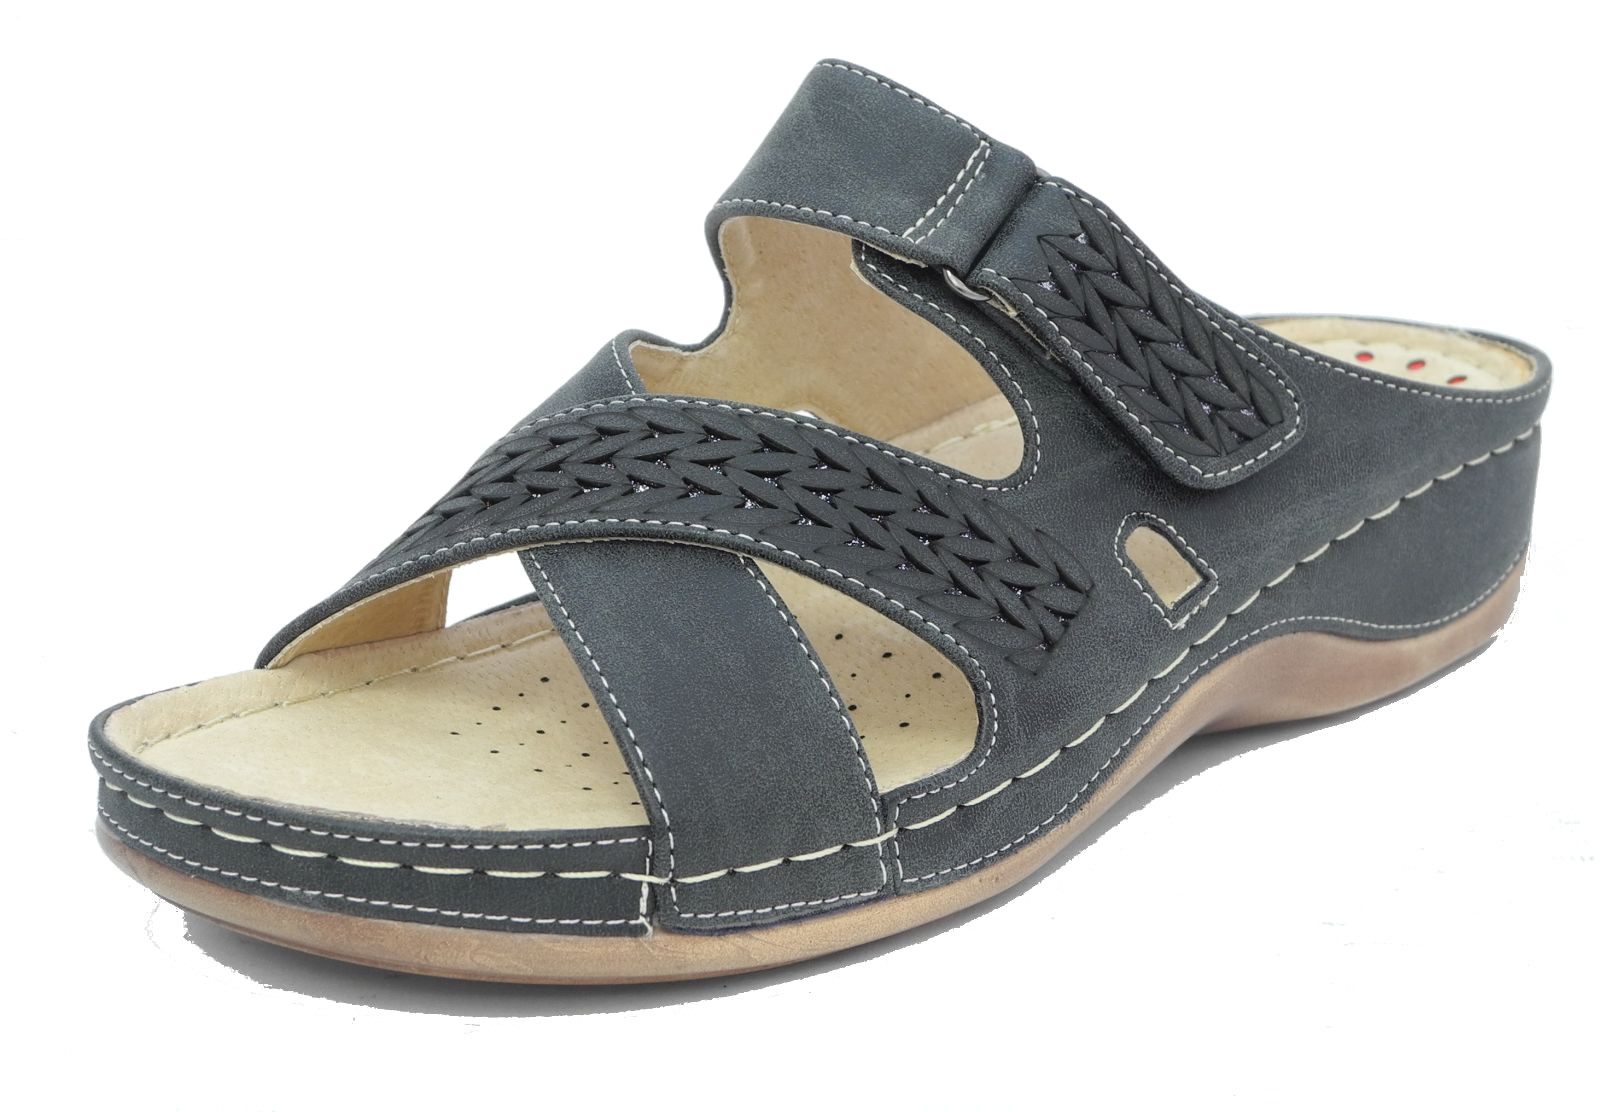 Product Features Slip-on closed-toe shoe with leather upper featuring round toe and minimal heel.